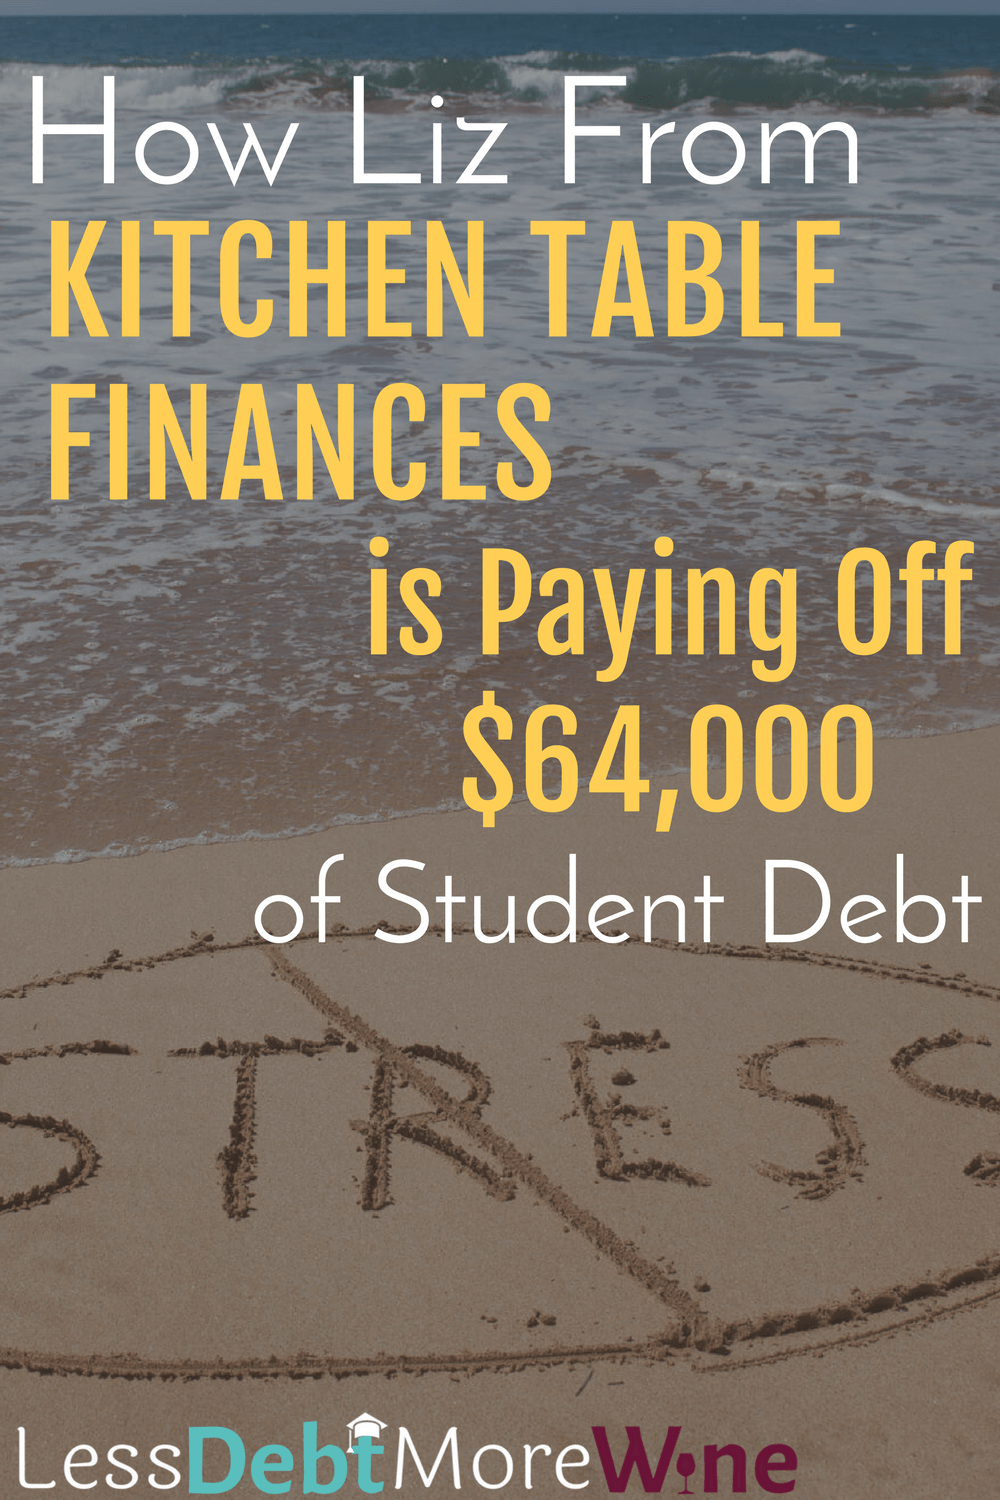 Stressing Less Helped Kitchen Table Finance's Reach Her Goals